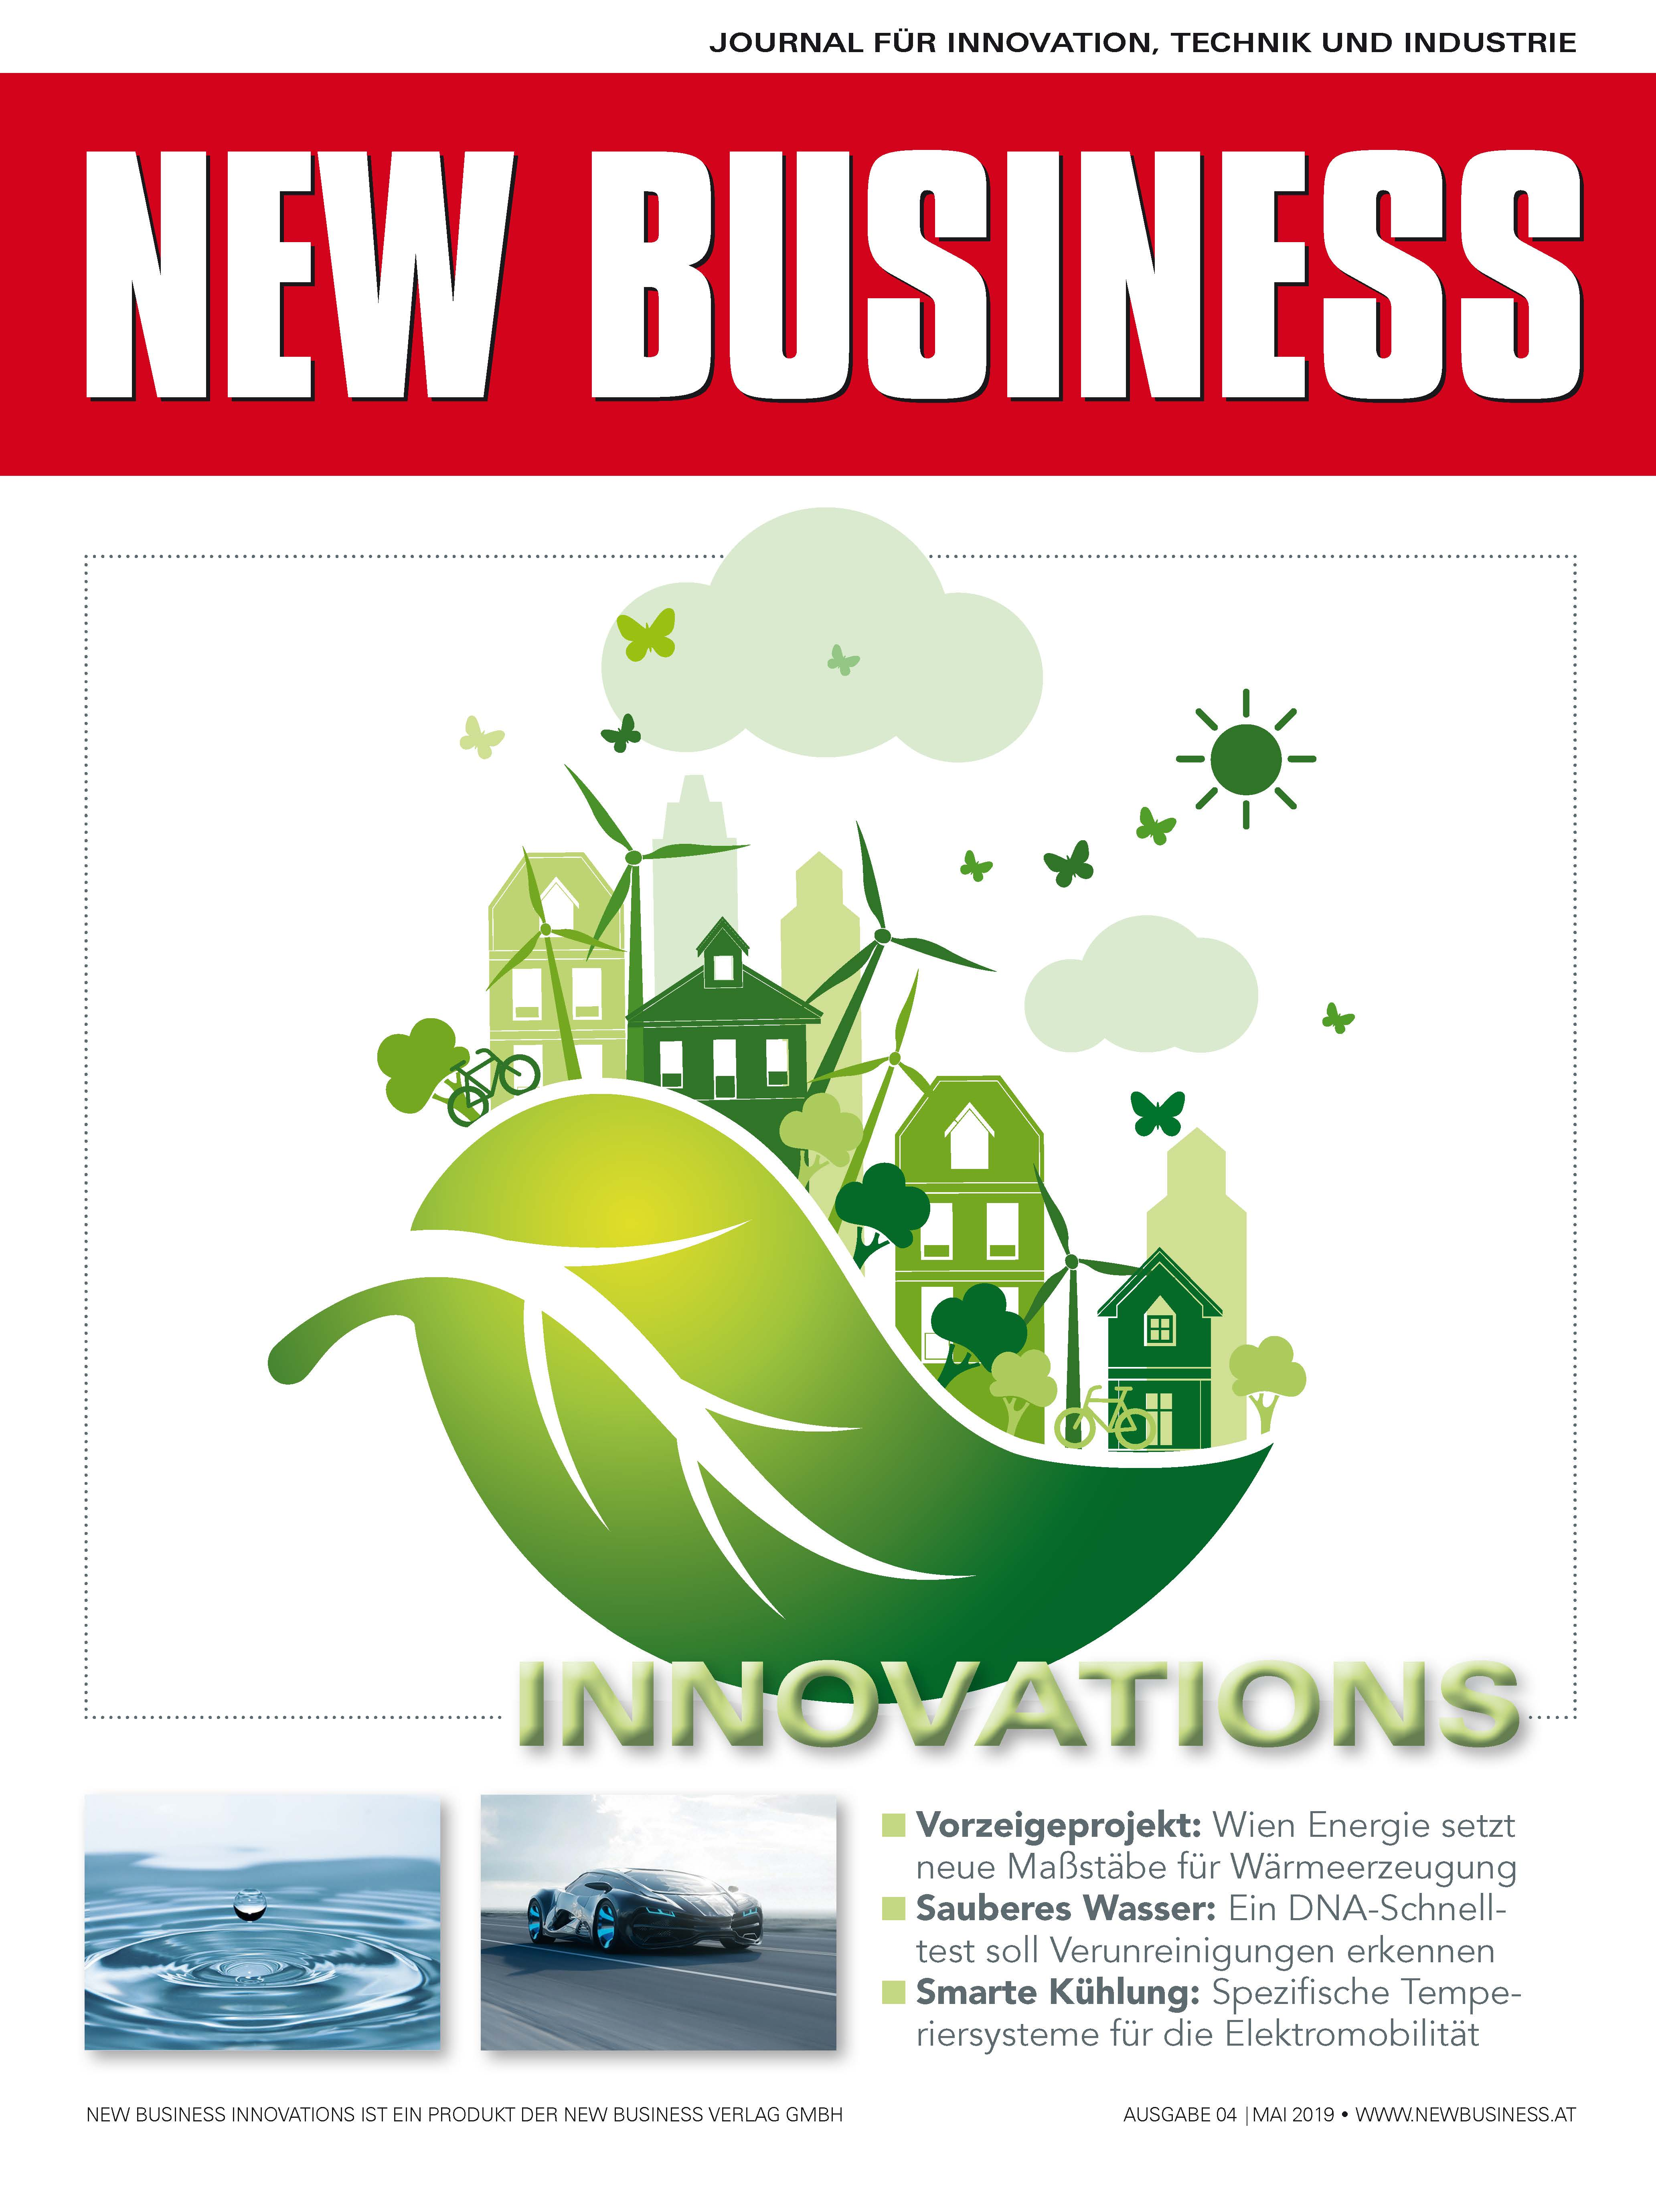 Cover: NEW BUSINESS Innovations - NR. 04, MAI 2019